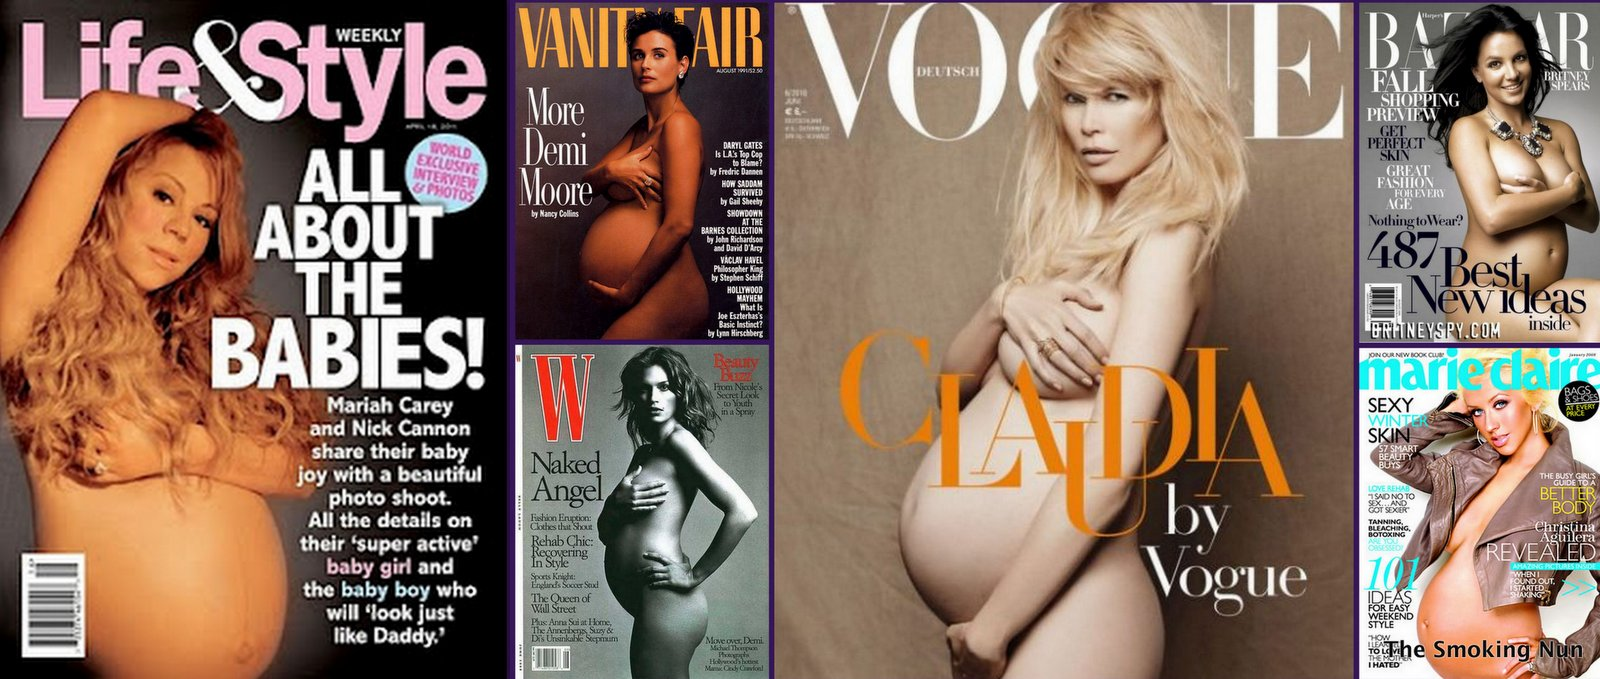 Do We Have To Go Through This Madness Yet Again Pregnancy Private Not Meant To Be Shared On Magazine Covers Jesus Woman Some Dignity Please